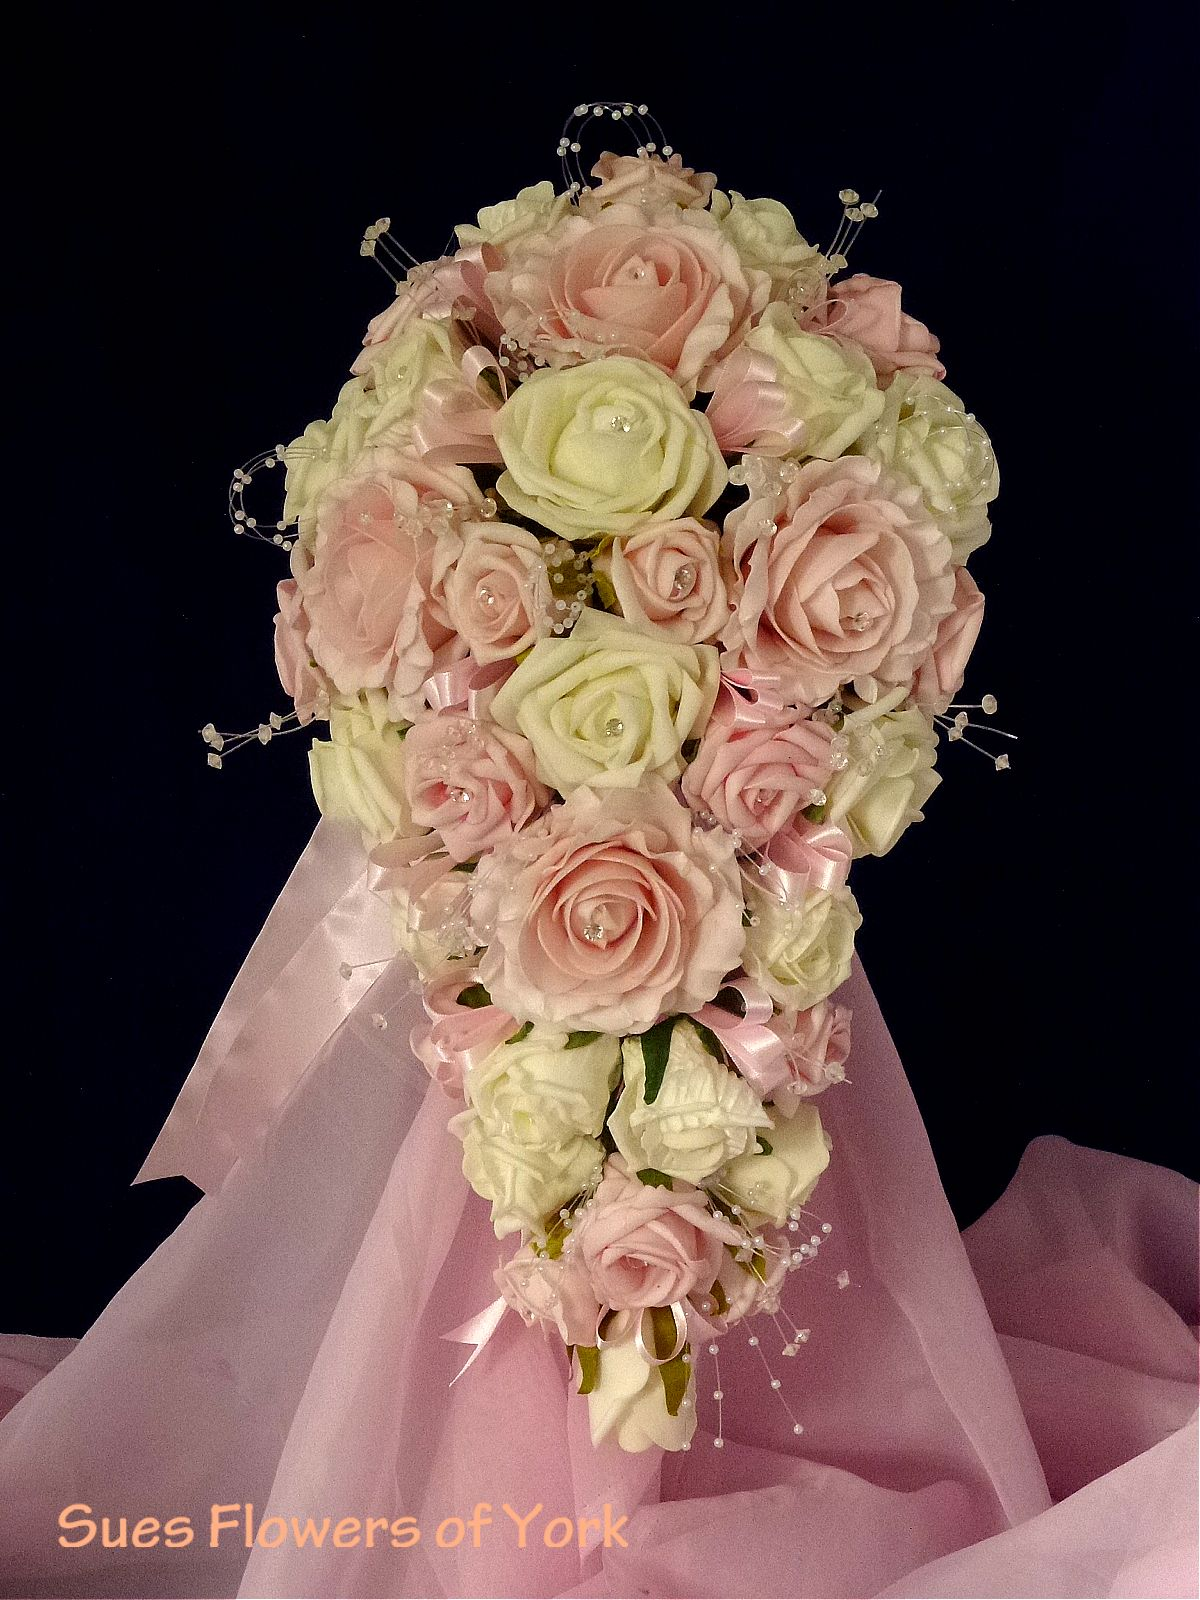 Fresh non flower bouquets for weddings design bruman mmc wedding flowers brides beautiful elegant teardrop bouquet of roses izmirmasajfo Images